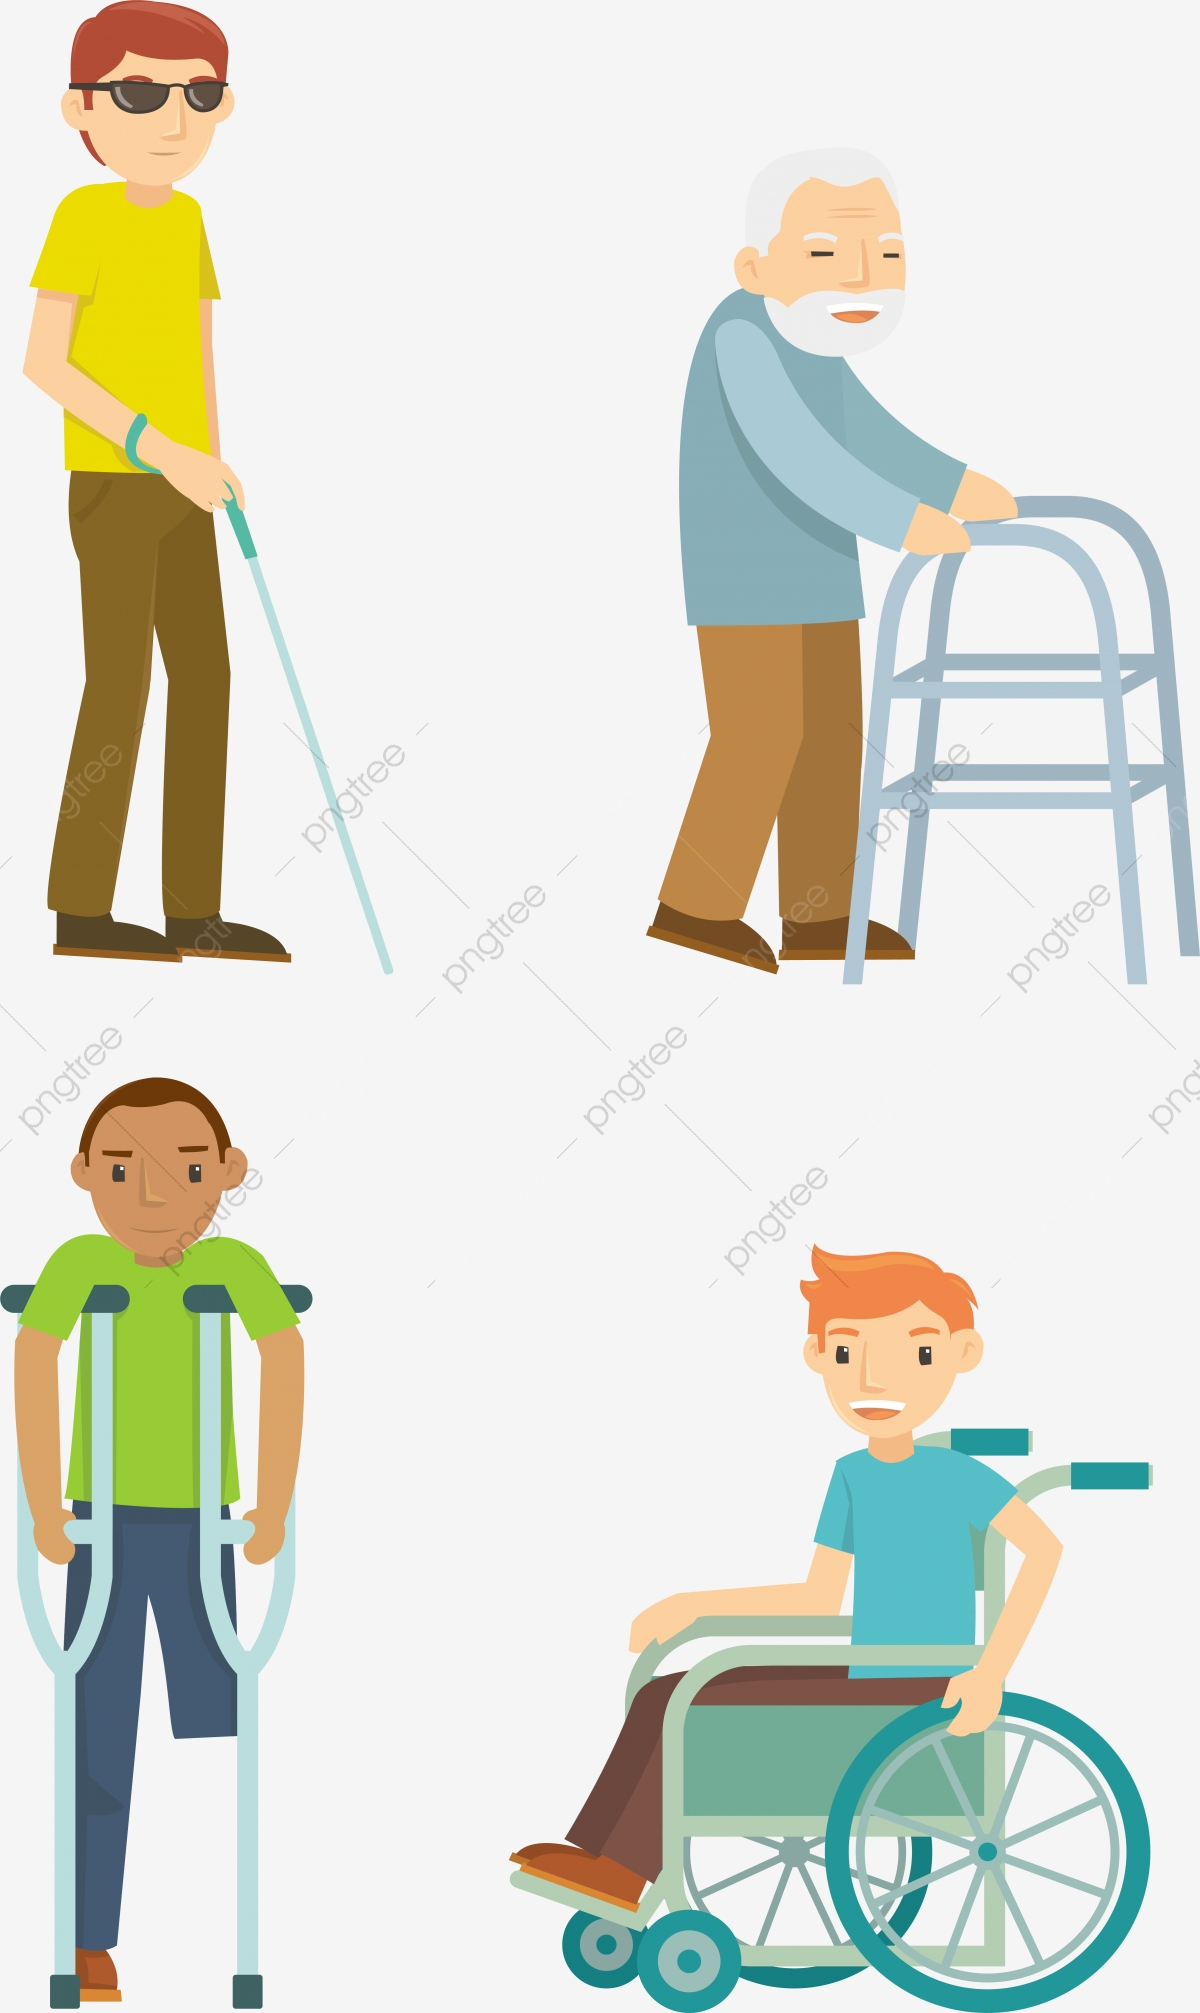 People Disabled, Person, Wheelchair, Illustration PNG and Vector.